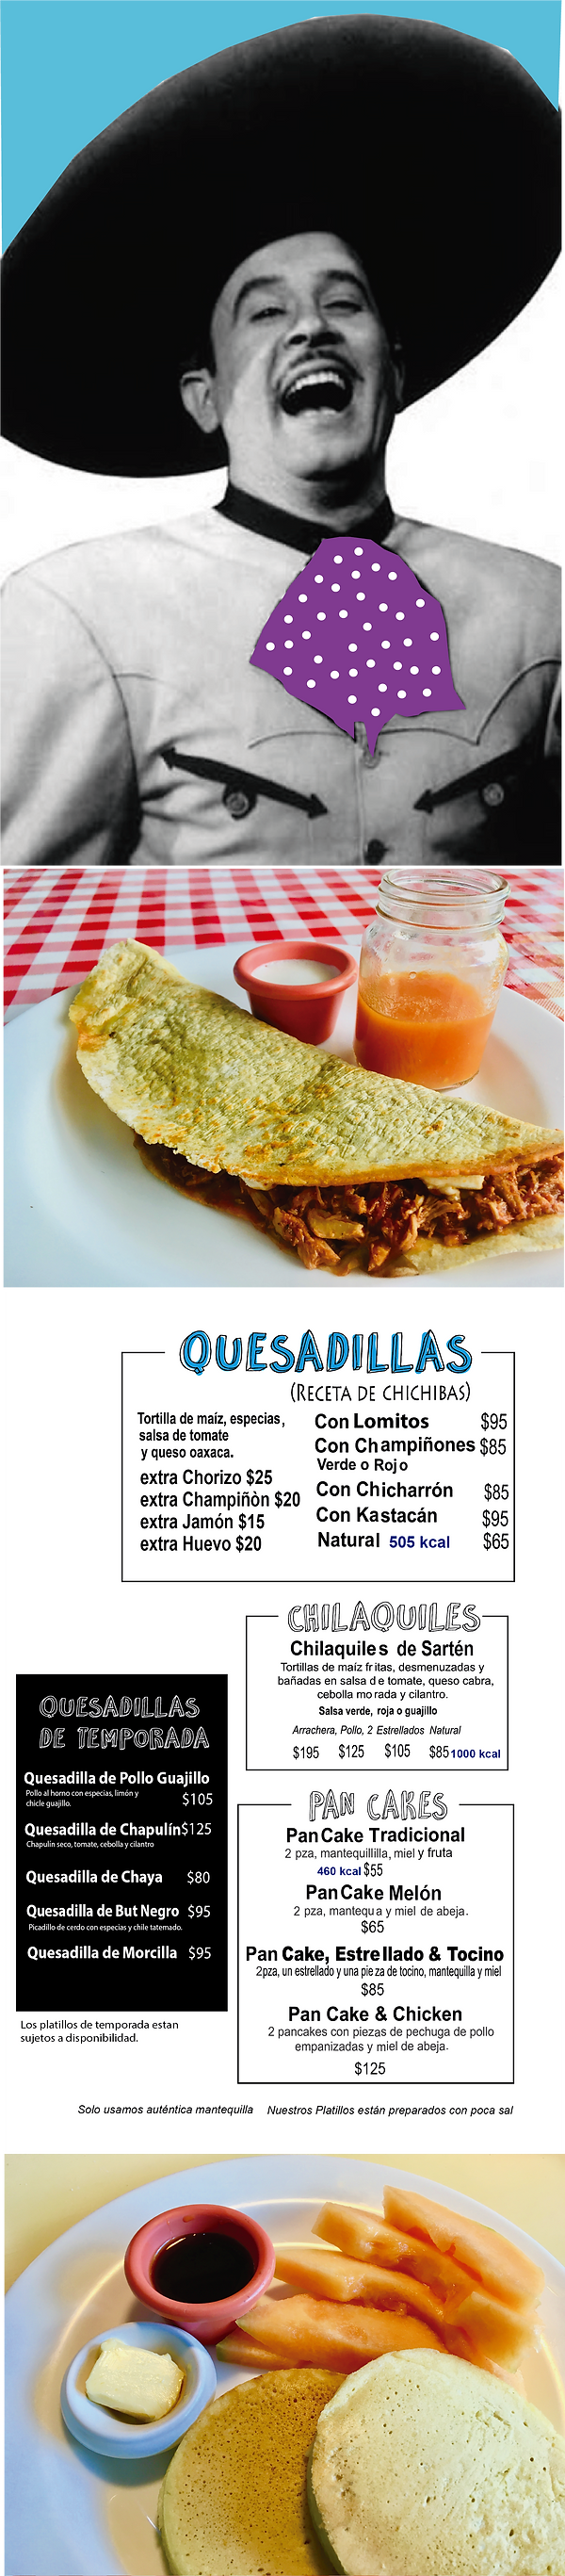 quesadillas-01.png